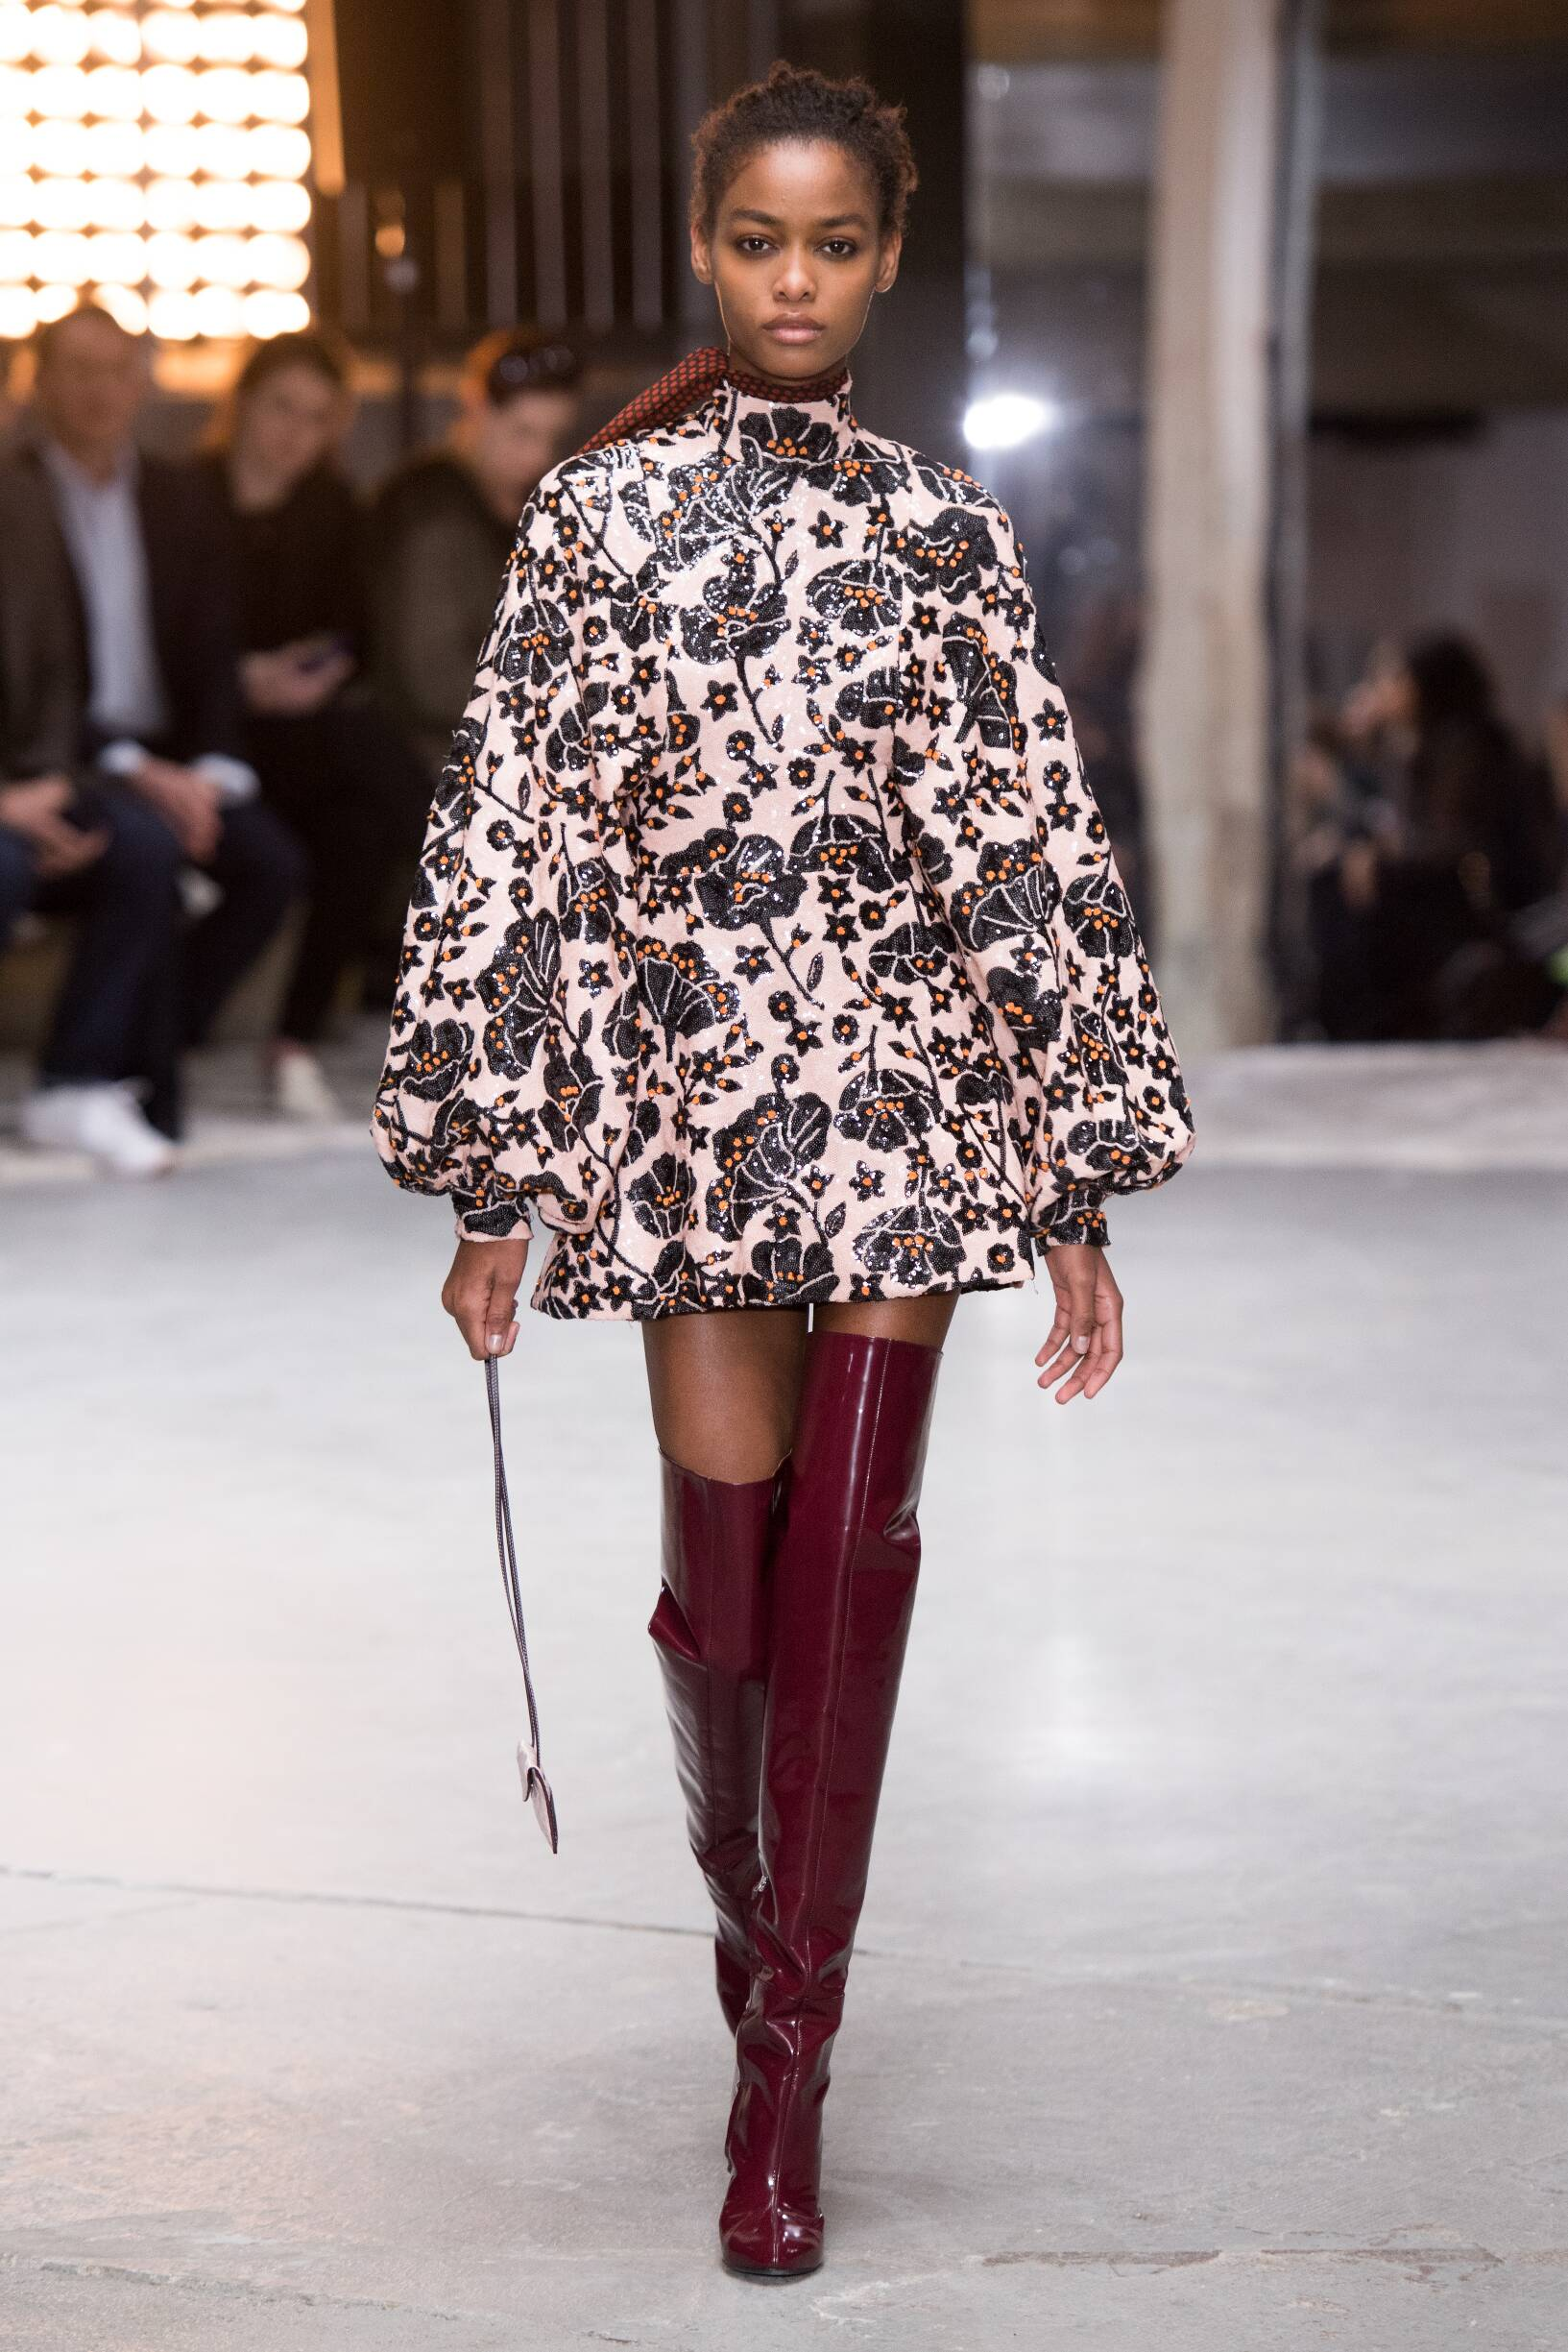 2018 Catwalk Giambattista Valli Woman Fashion Show Winter